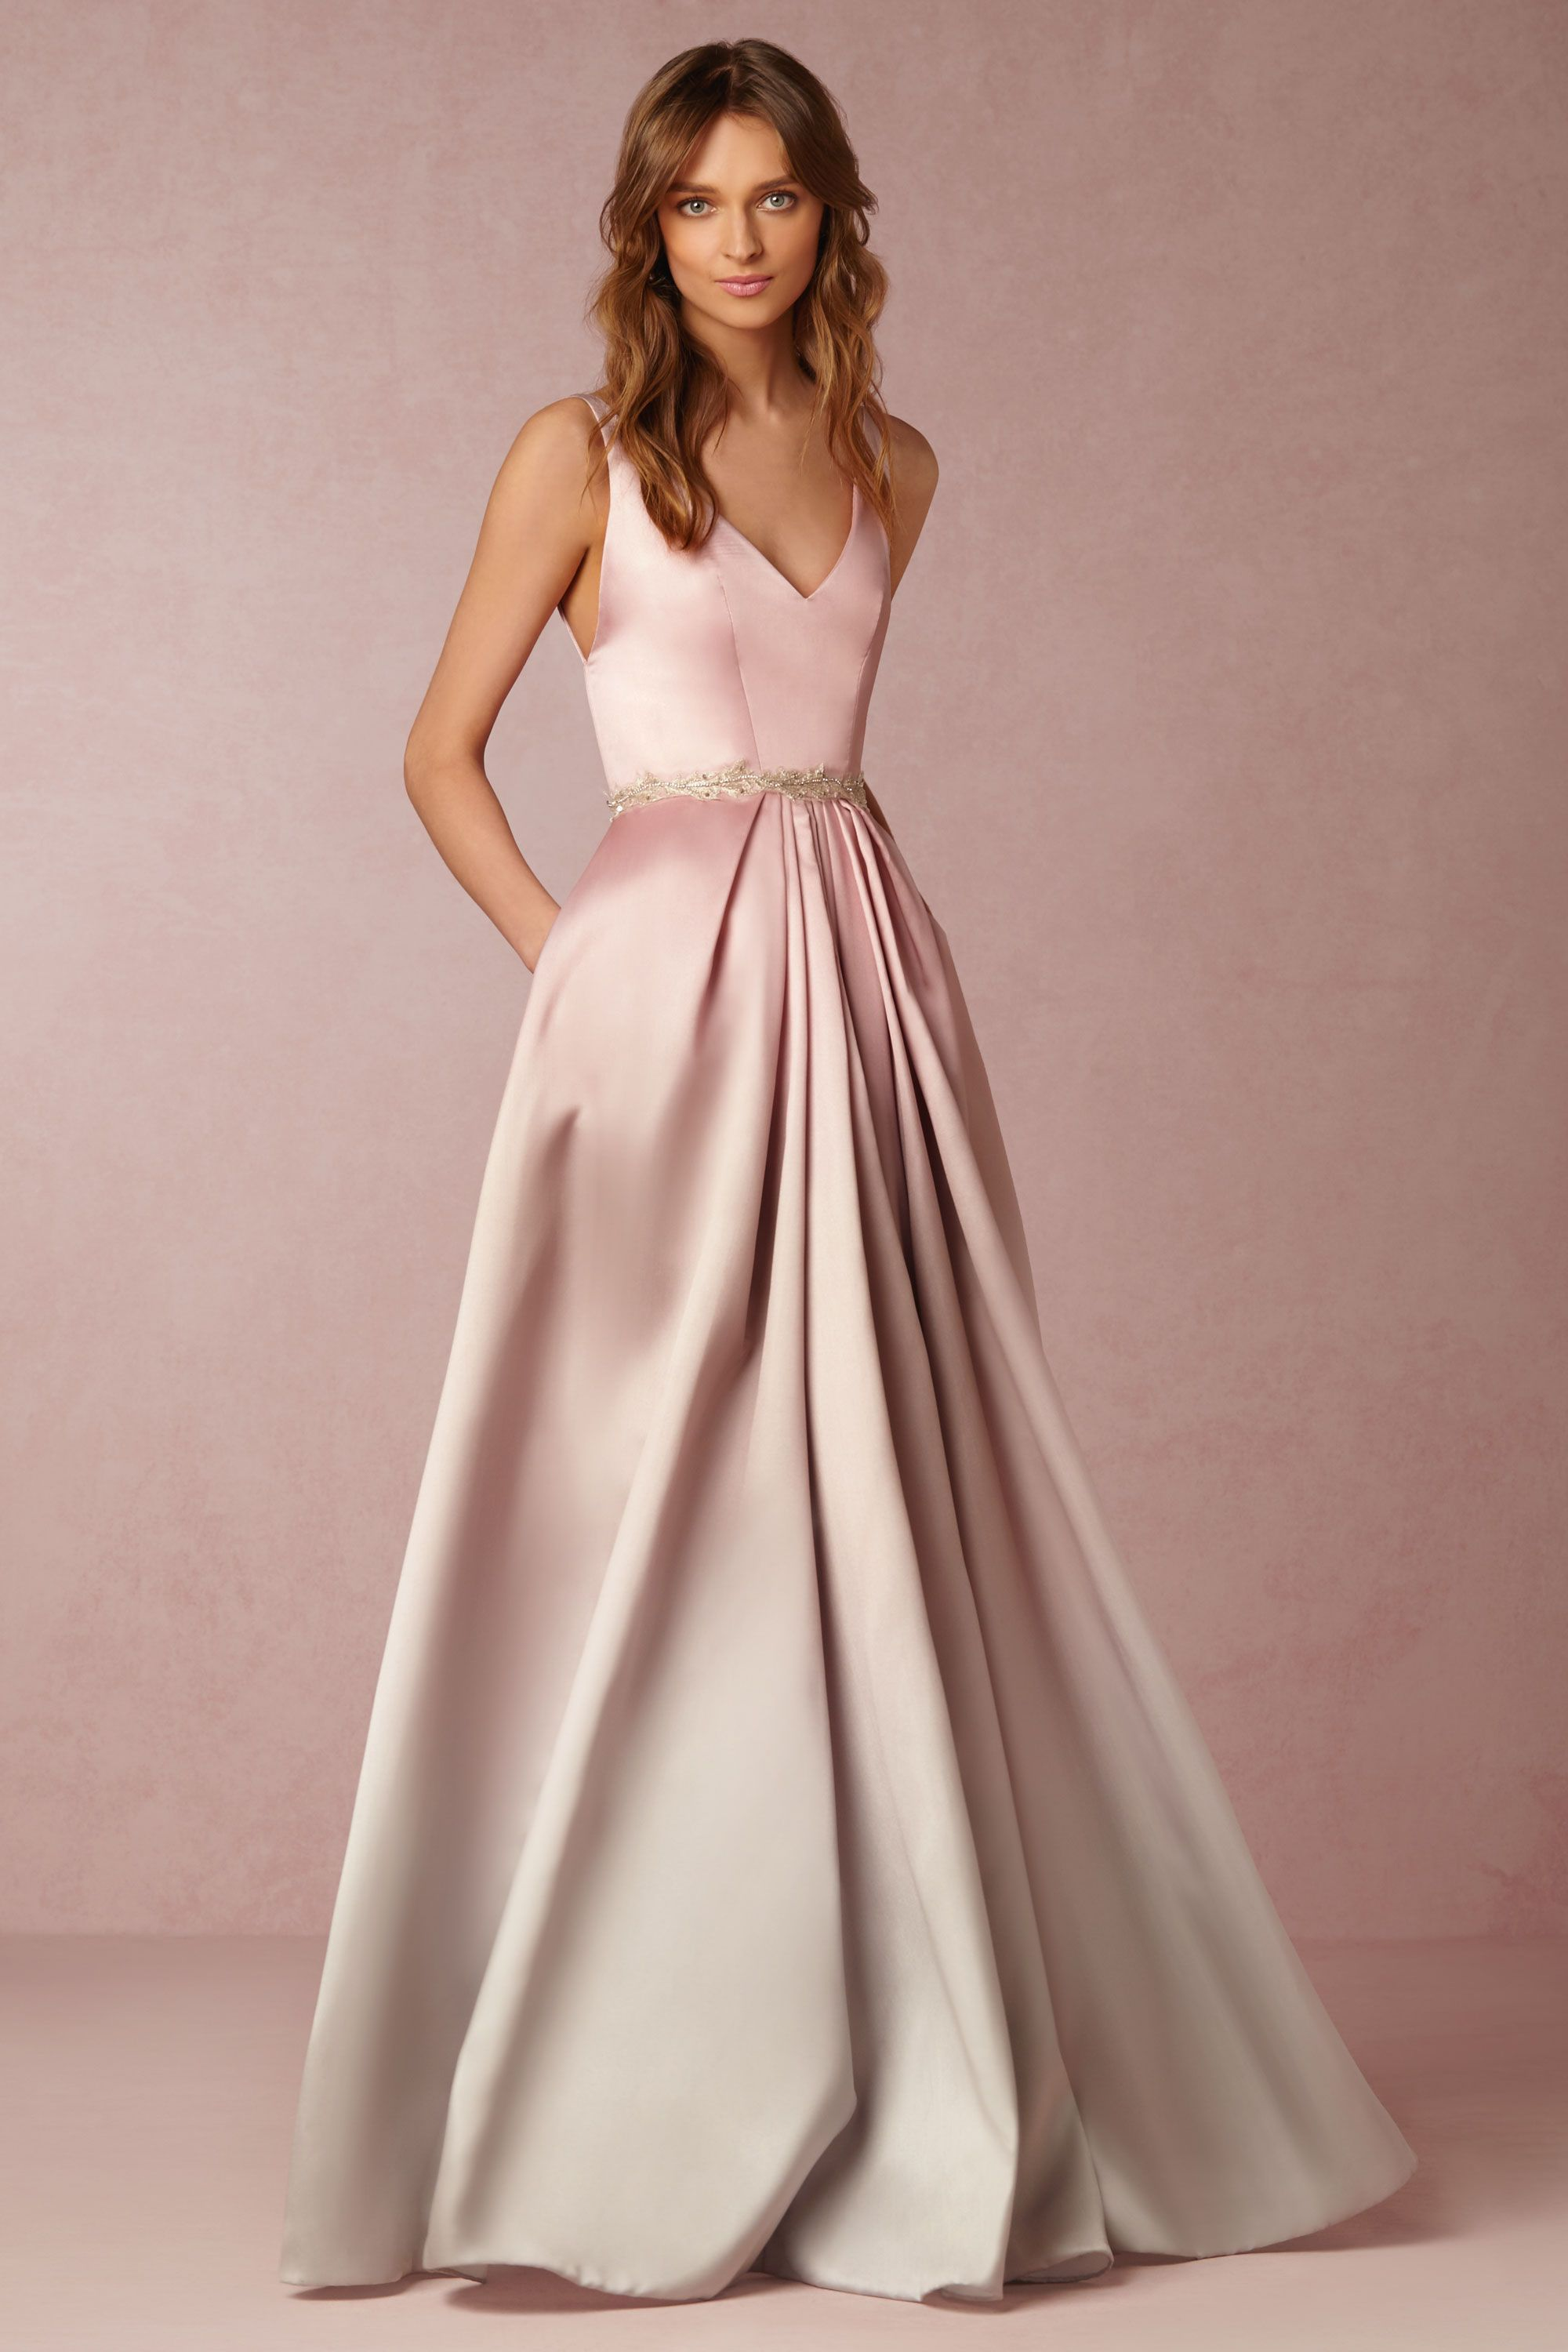 Lorraine Dress from @BHLDN | wedding dress | Pinterest | Tu boda ...